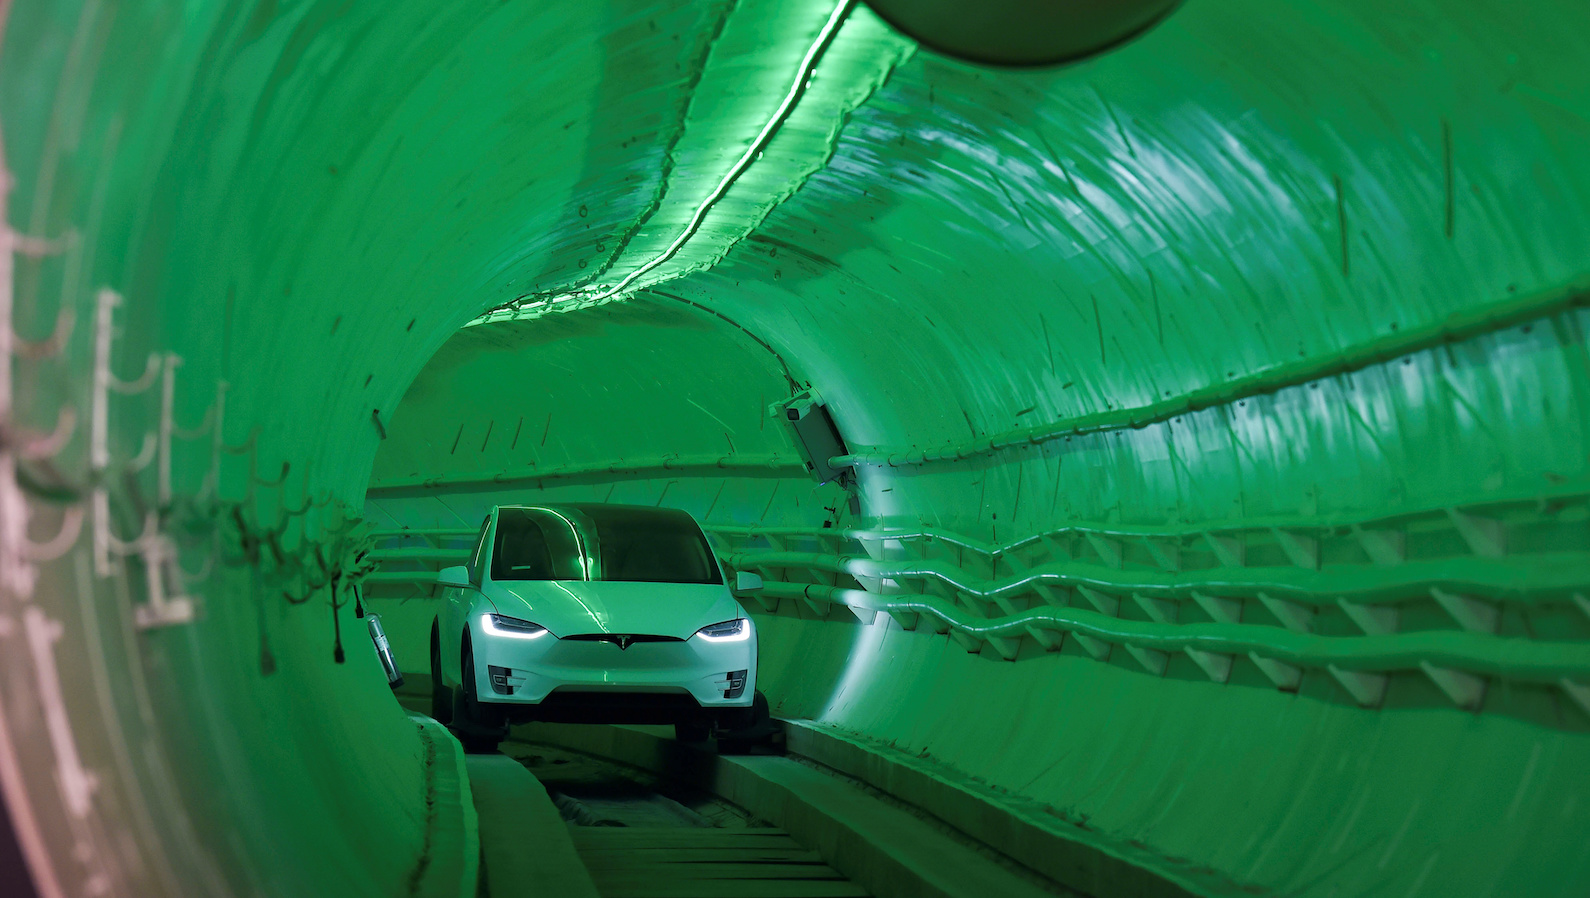 The Boring Company shows off their first tunnel in Hawthorne, California